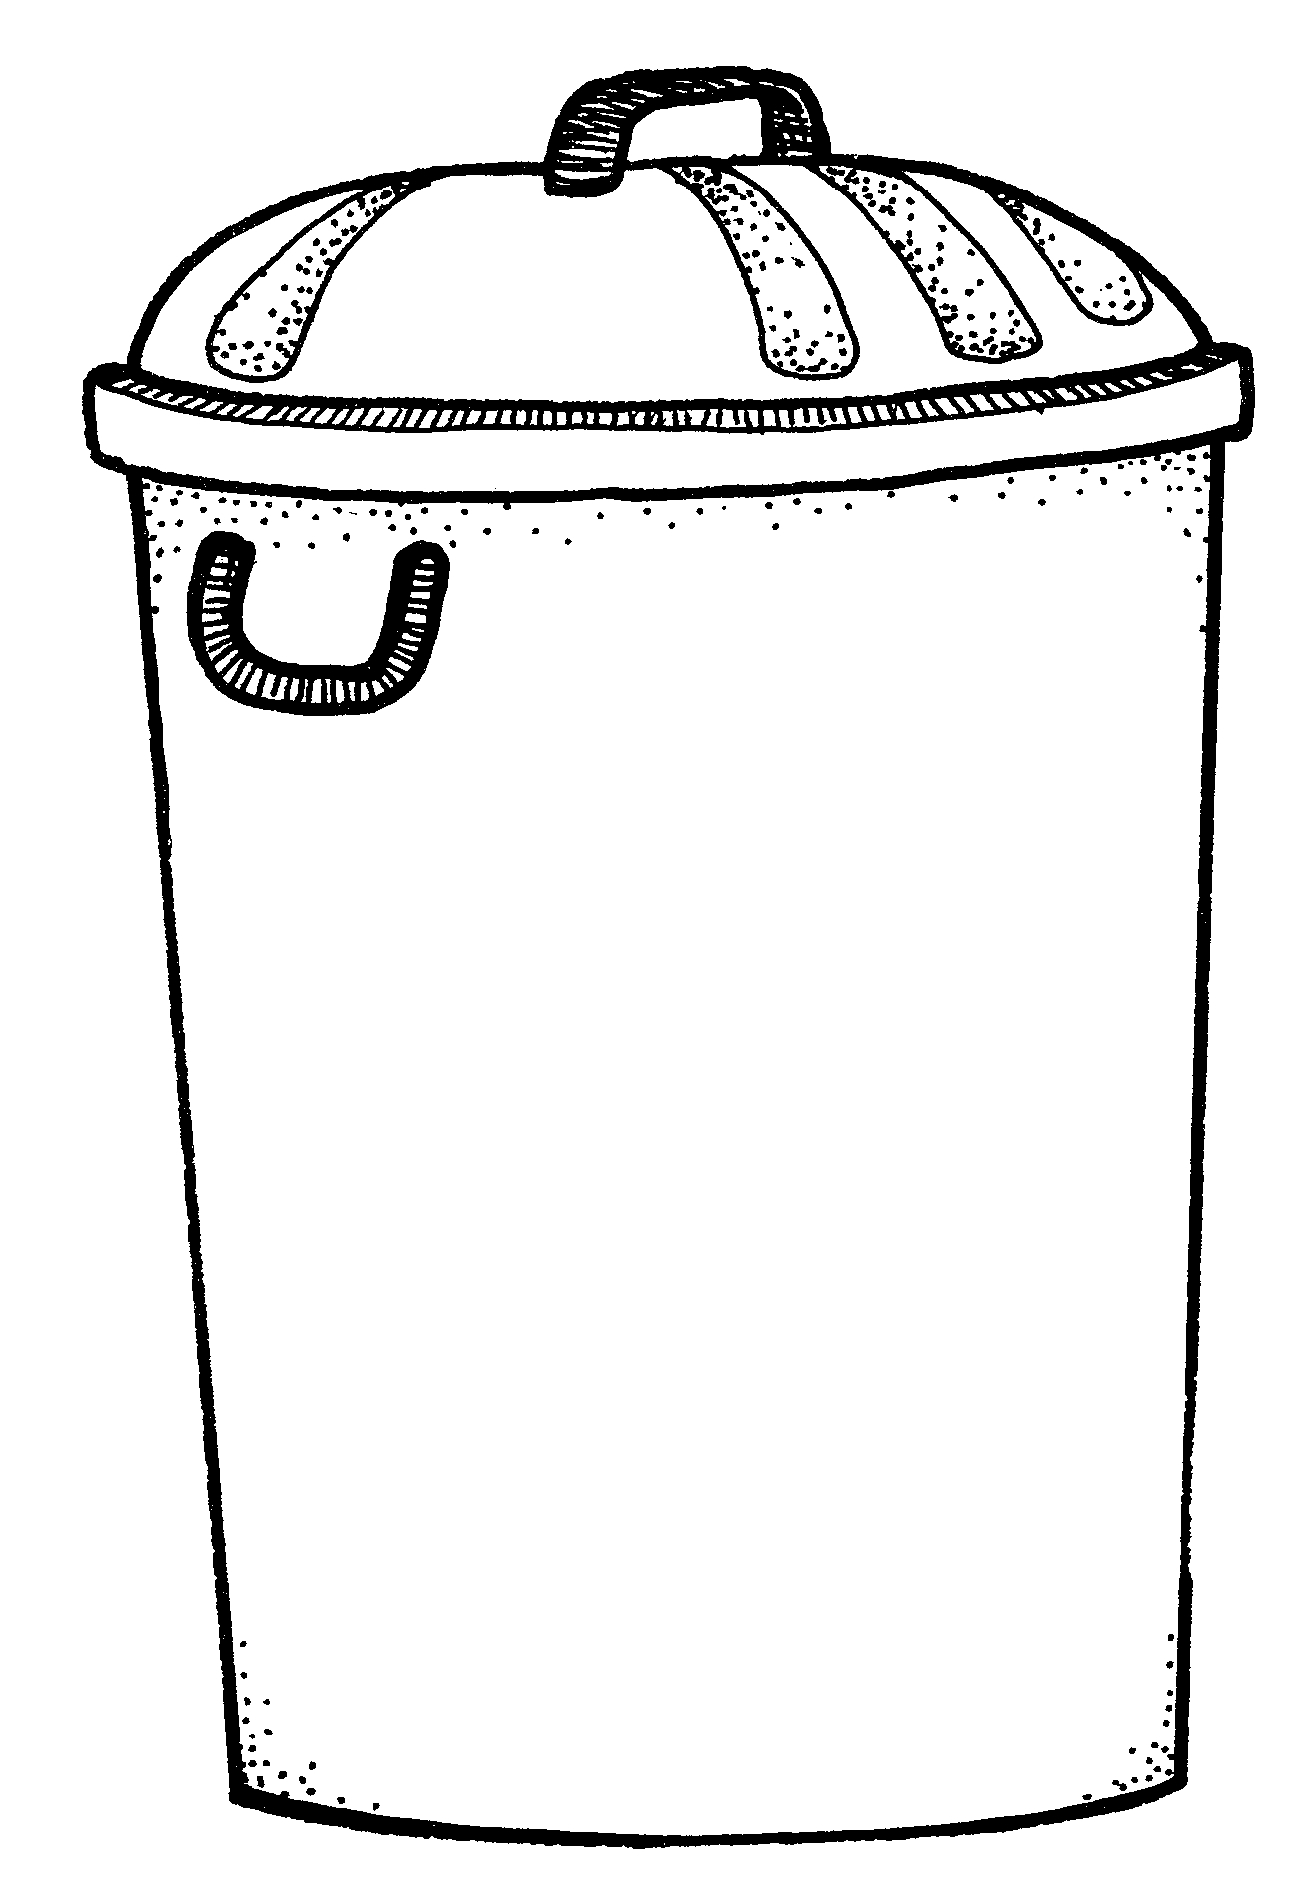 Daumen Runter Clipart Dustbin Clipart Black And White 9 Clipart Station